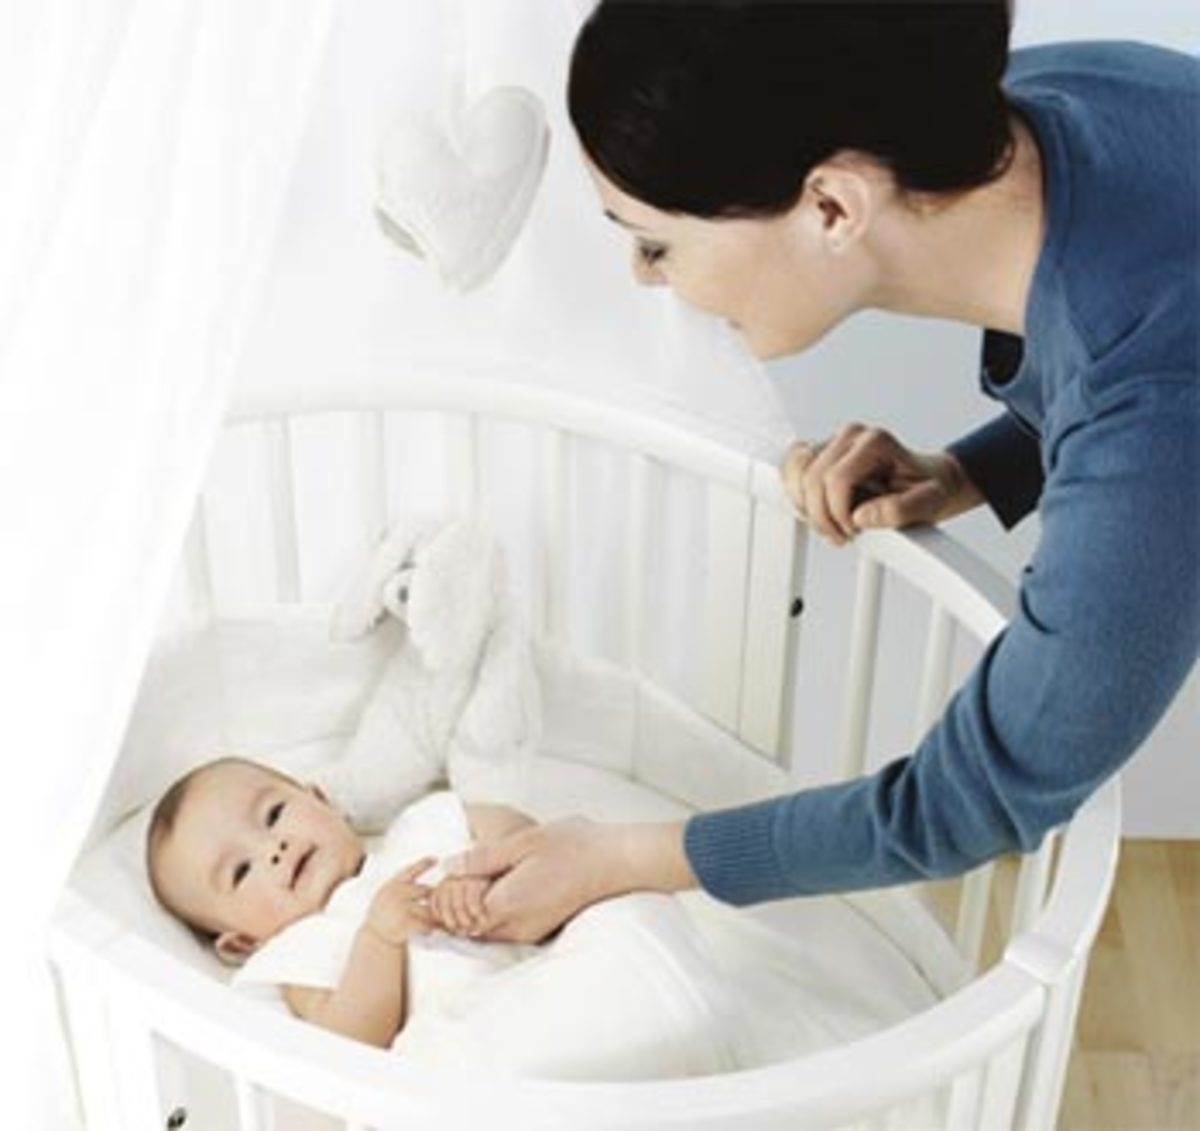 put your children to sleep on non-toxic baby mattresses - organic